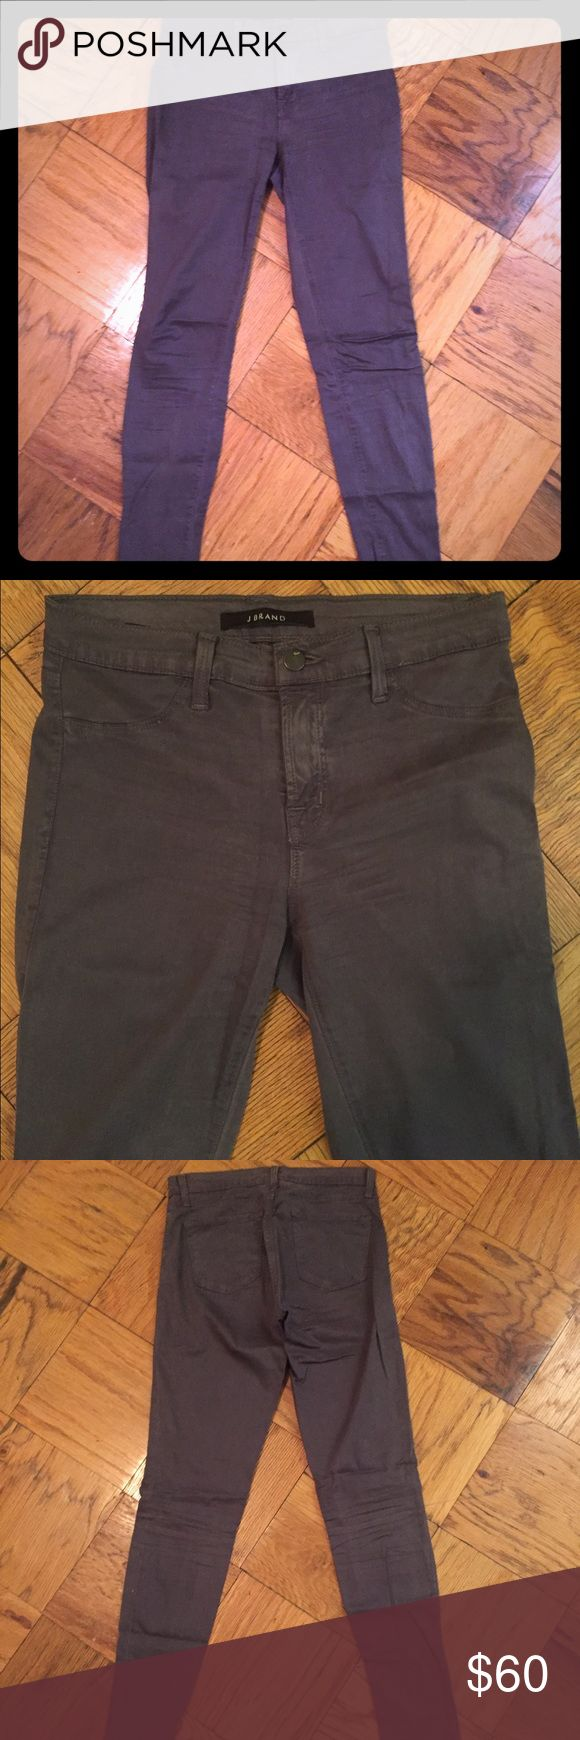 """J Brand Super Skinny Legging Jeans in """"ash"""" grey J Brand Super Skinny Legging Jeans in """"ash"""" grey. Super soft, comfortable with stretch. Mid-rise. J Brand Jeans Skinny"""